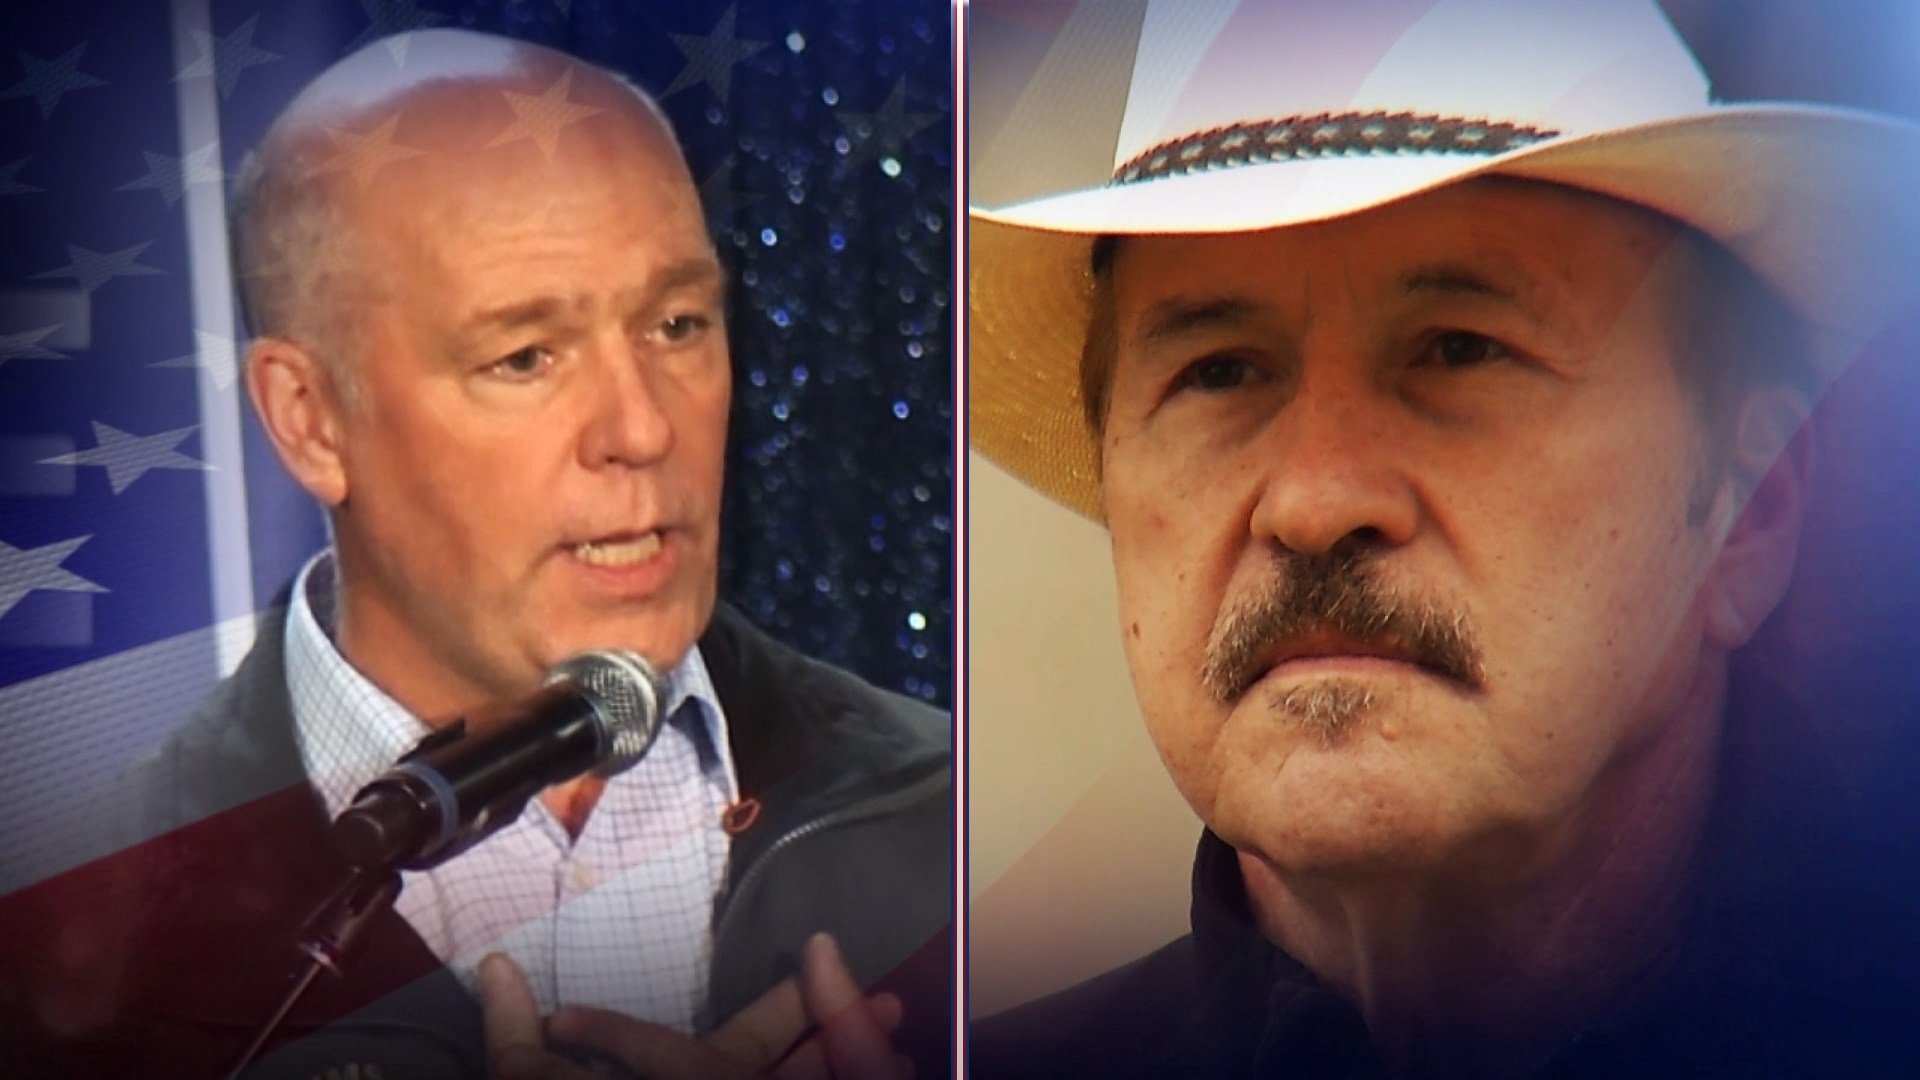 U.S. House candidates Greg Gianforte (left) and Rob Quist